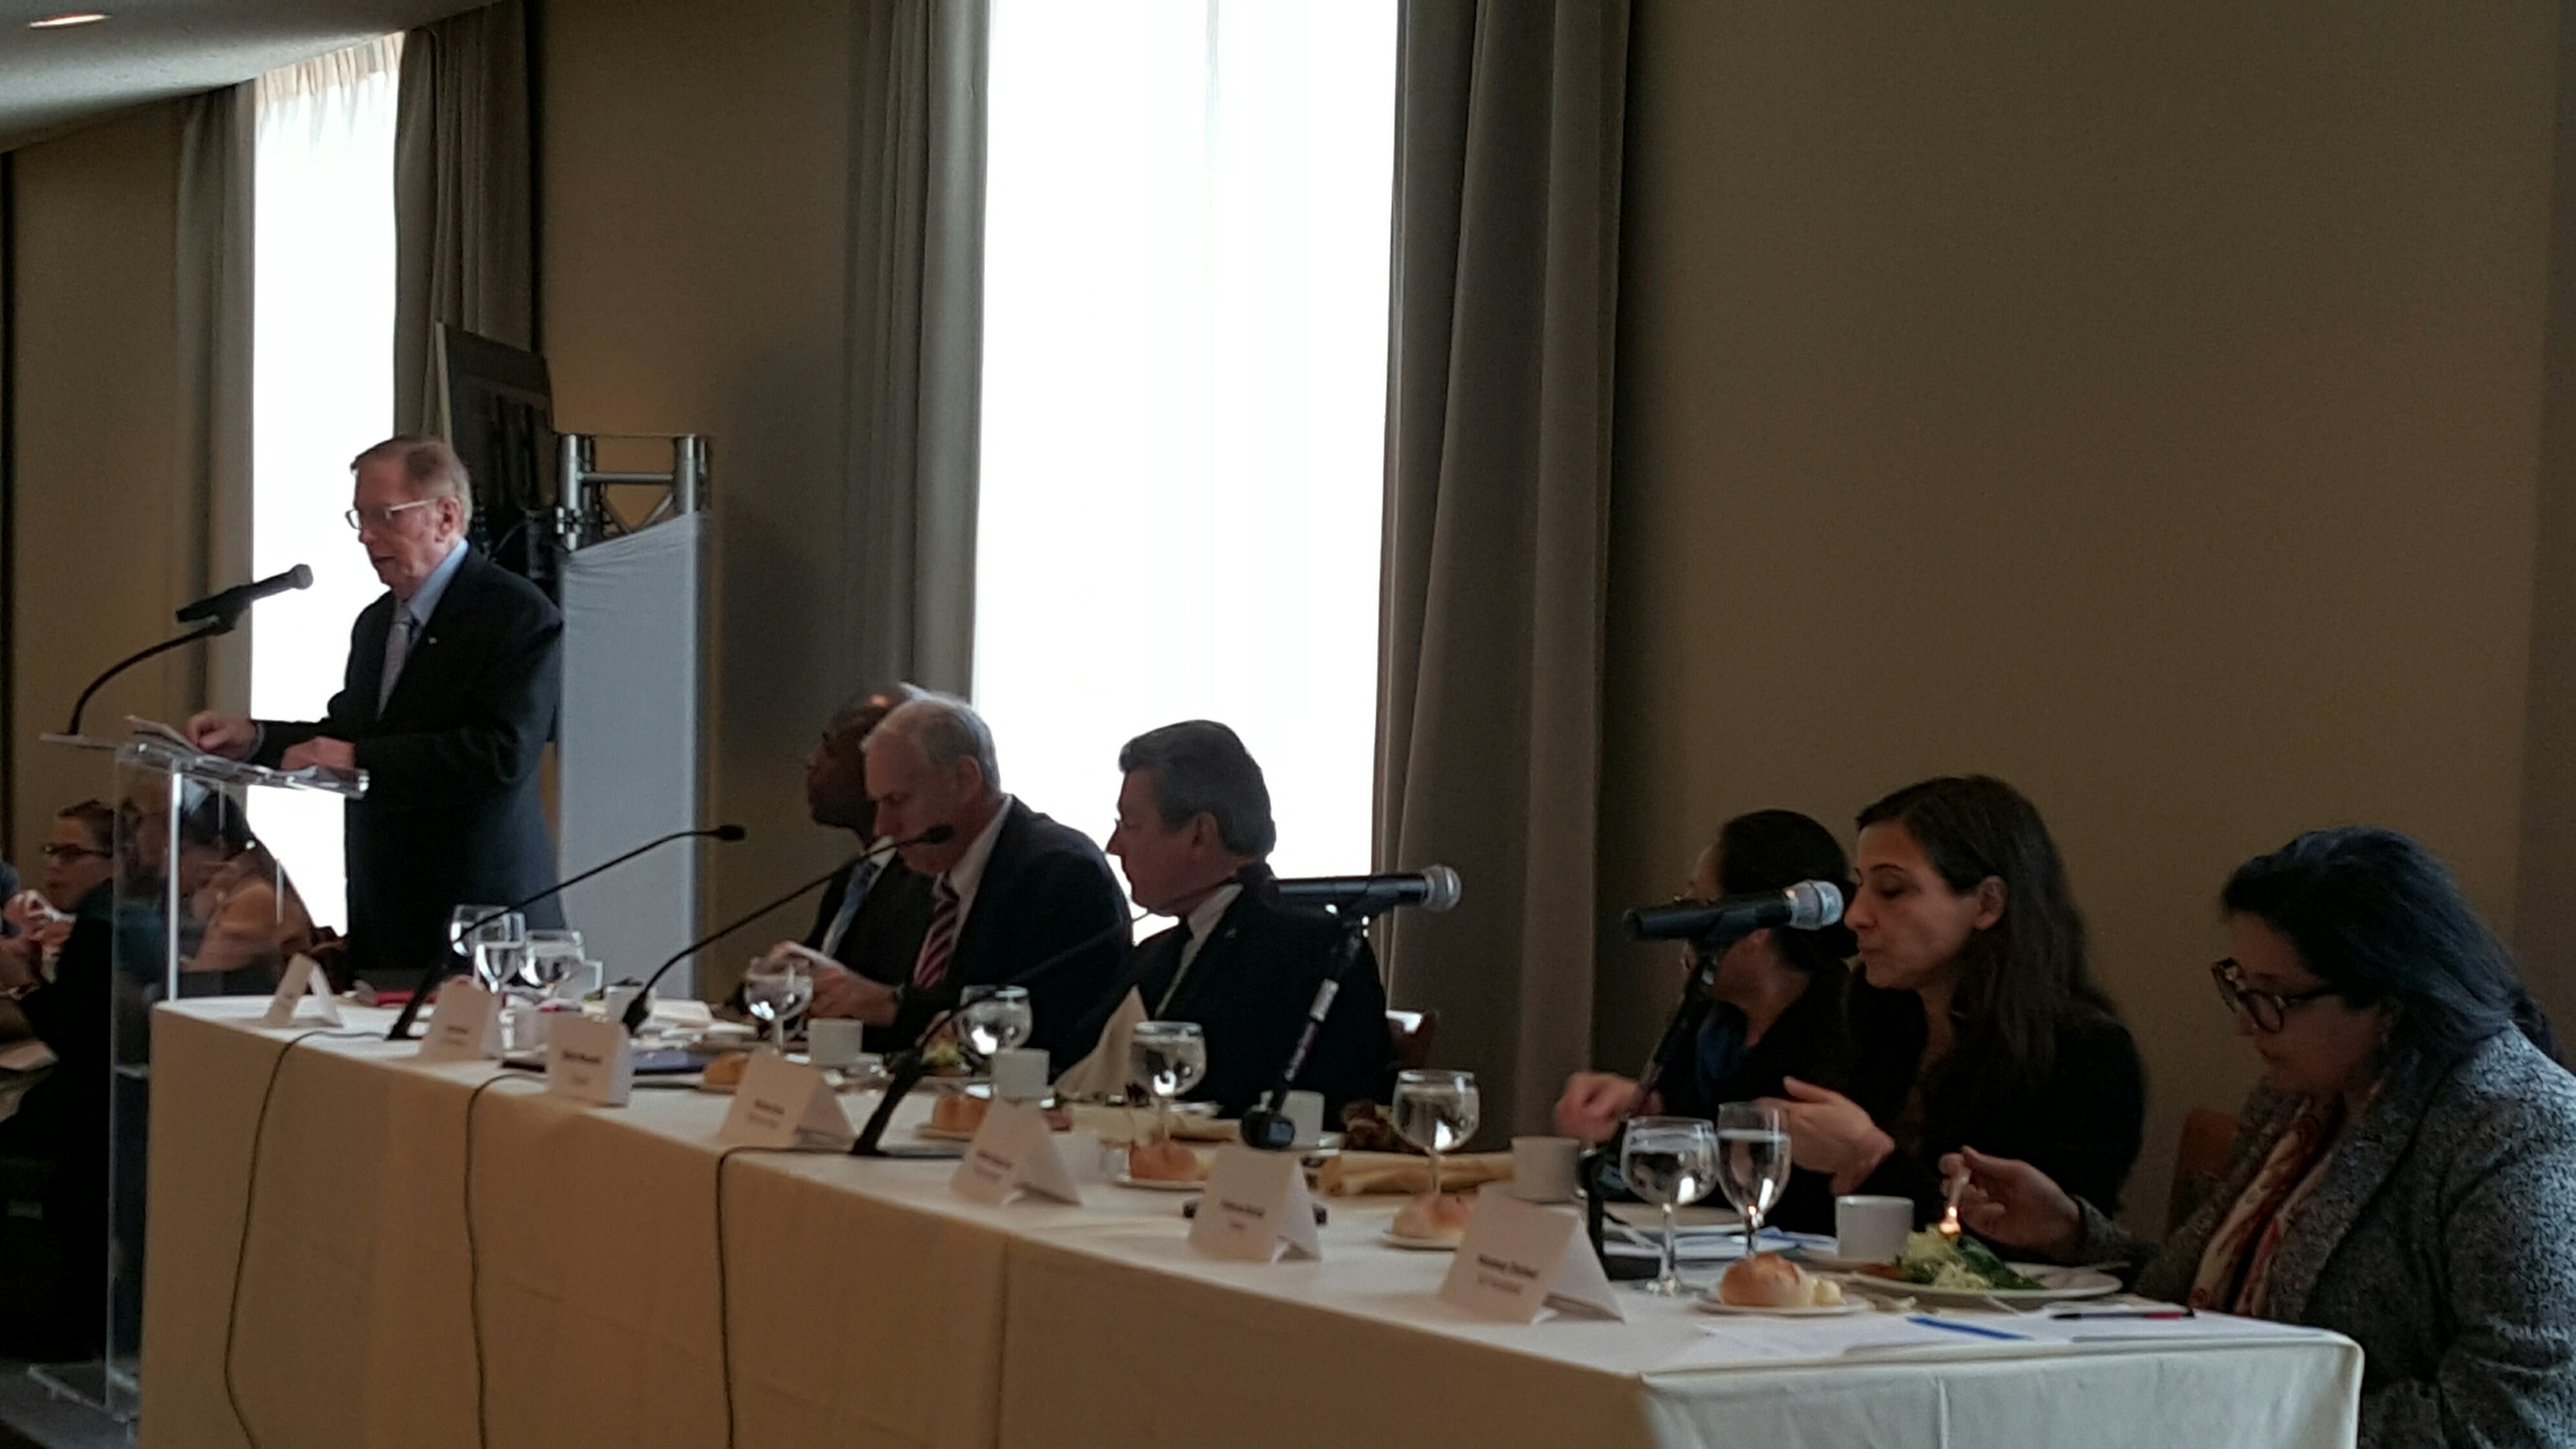 Justice Kirby speaks before panellists at the UN High-Level Panel on Access to Medicines luncheon yesterday